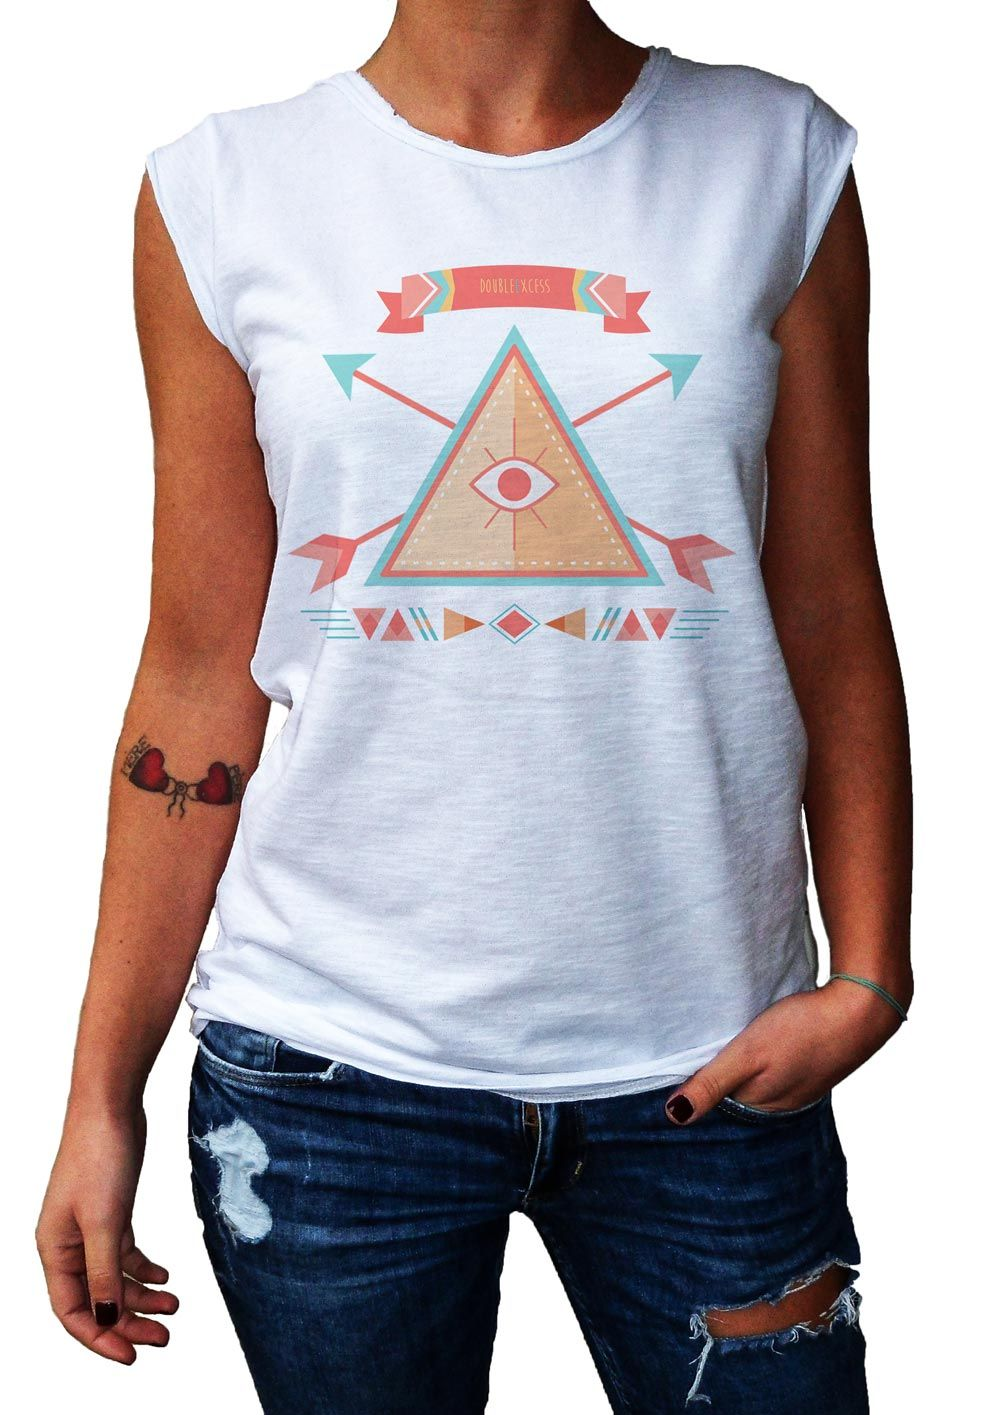 Women's T-Shirt THE TRIANGLE OF TRUTH - 100% Made in Italy - 100% Cotton - BOHO COLLECTION http://www.doubleexcess.com/